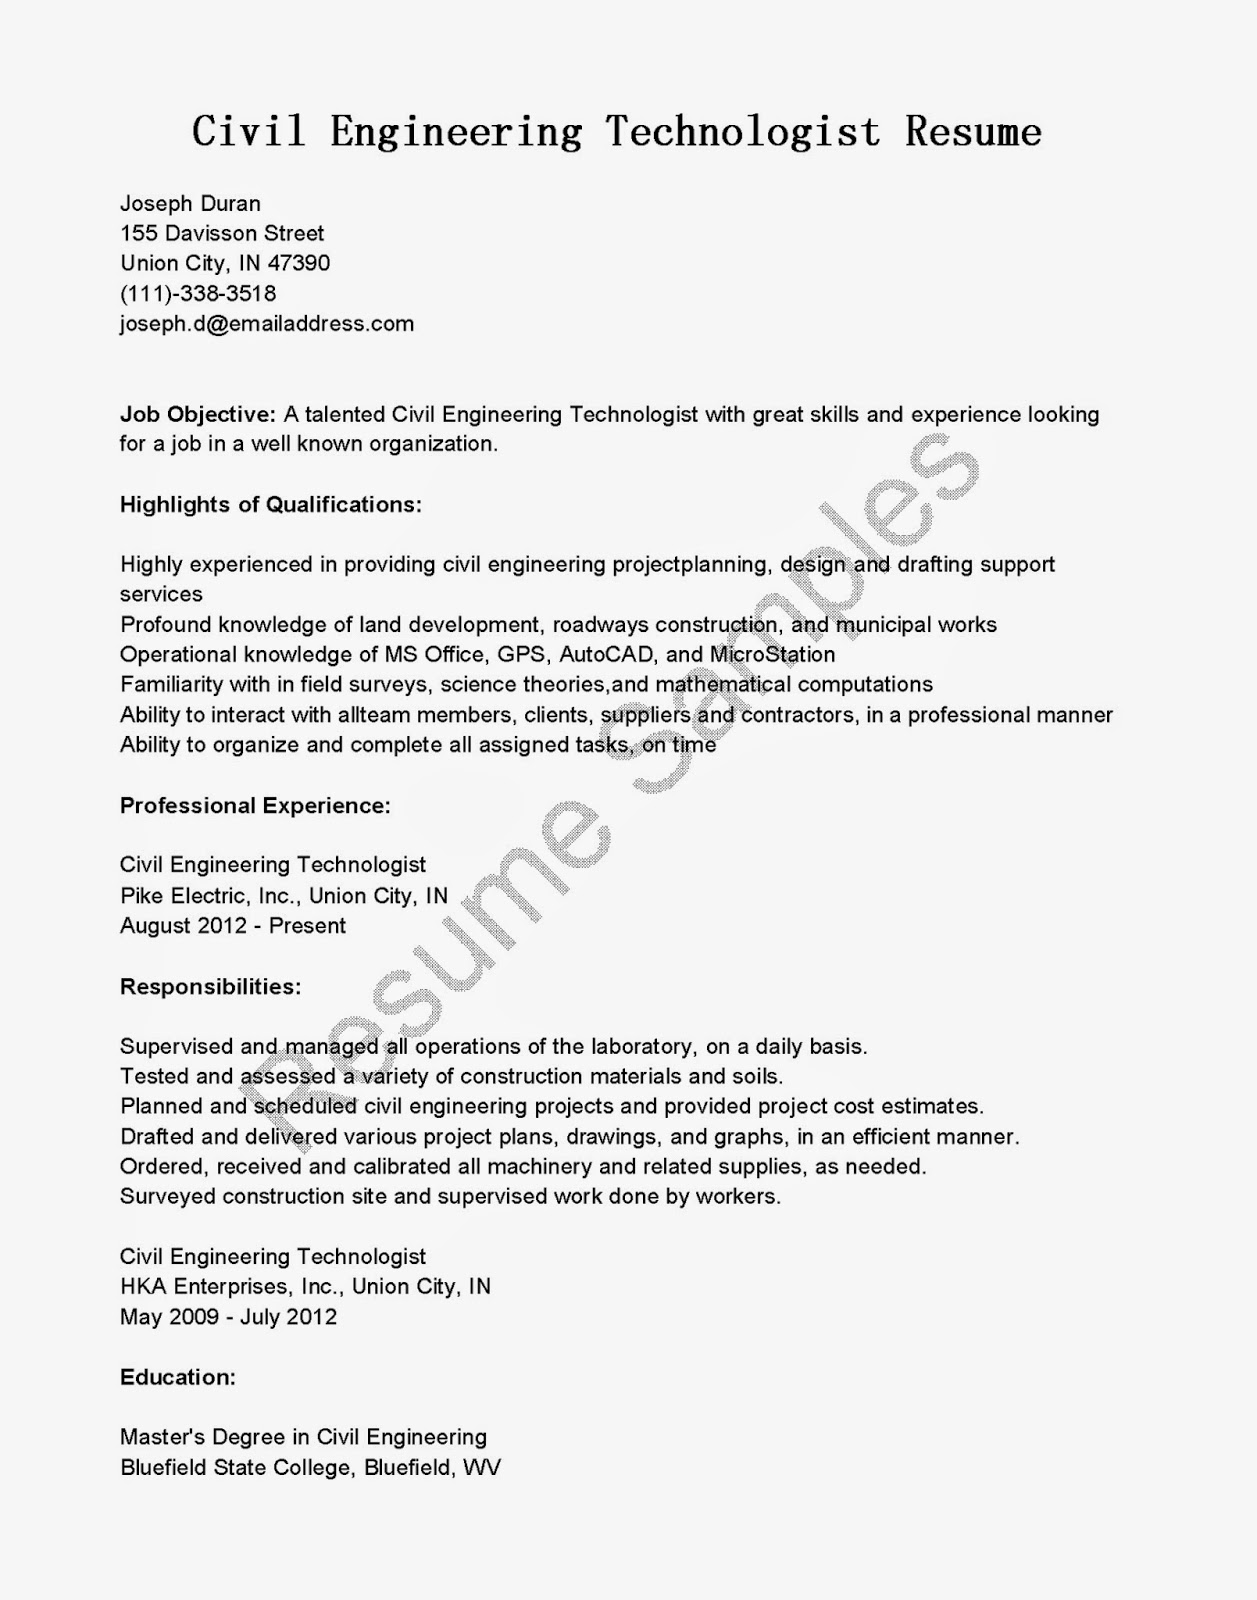 engineering personal statement personal statement sample civil engineering teodor ilincai personal statement sample civil engineering teodor ilincai